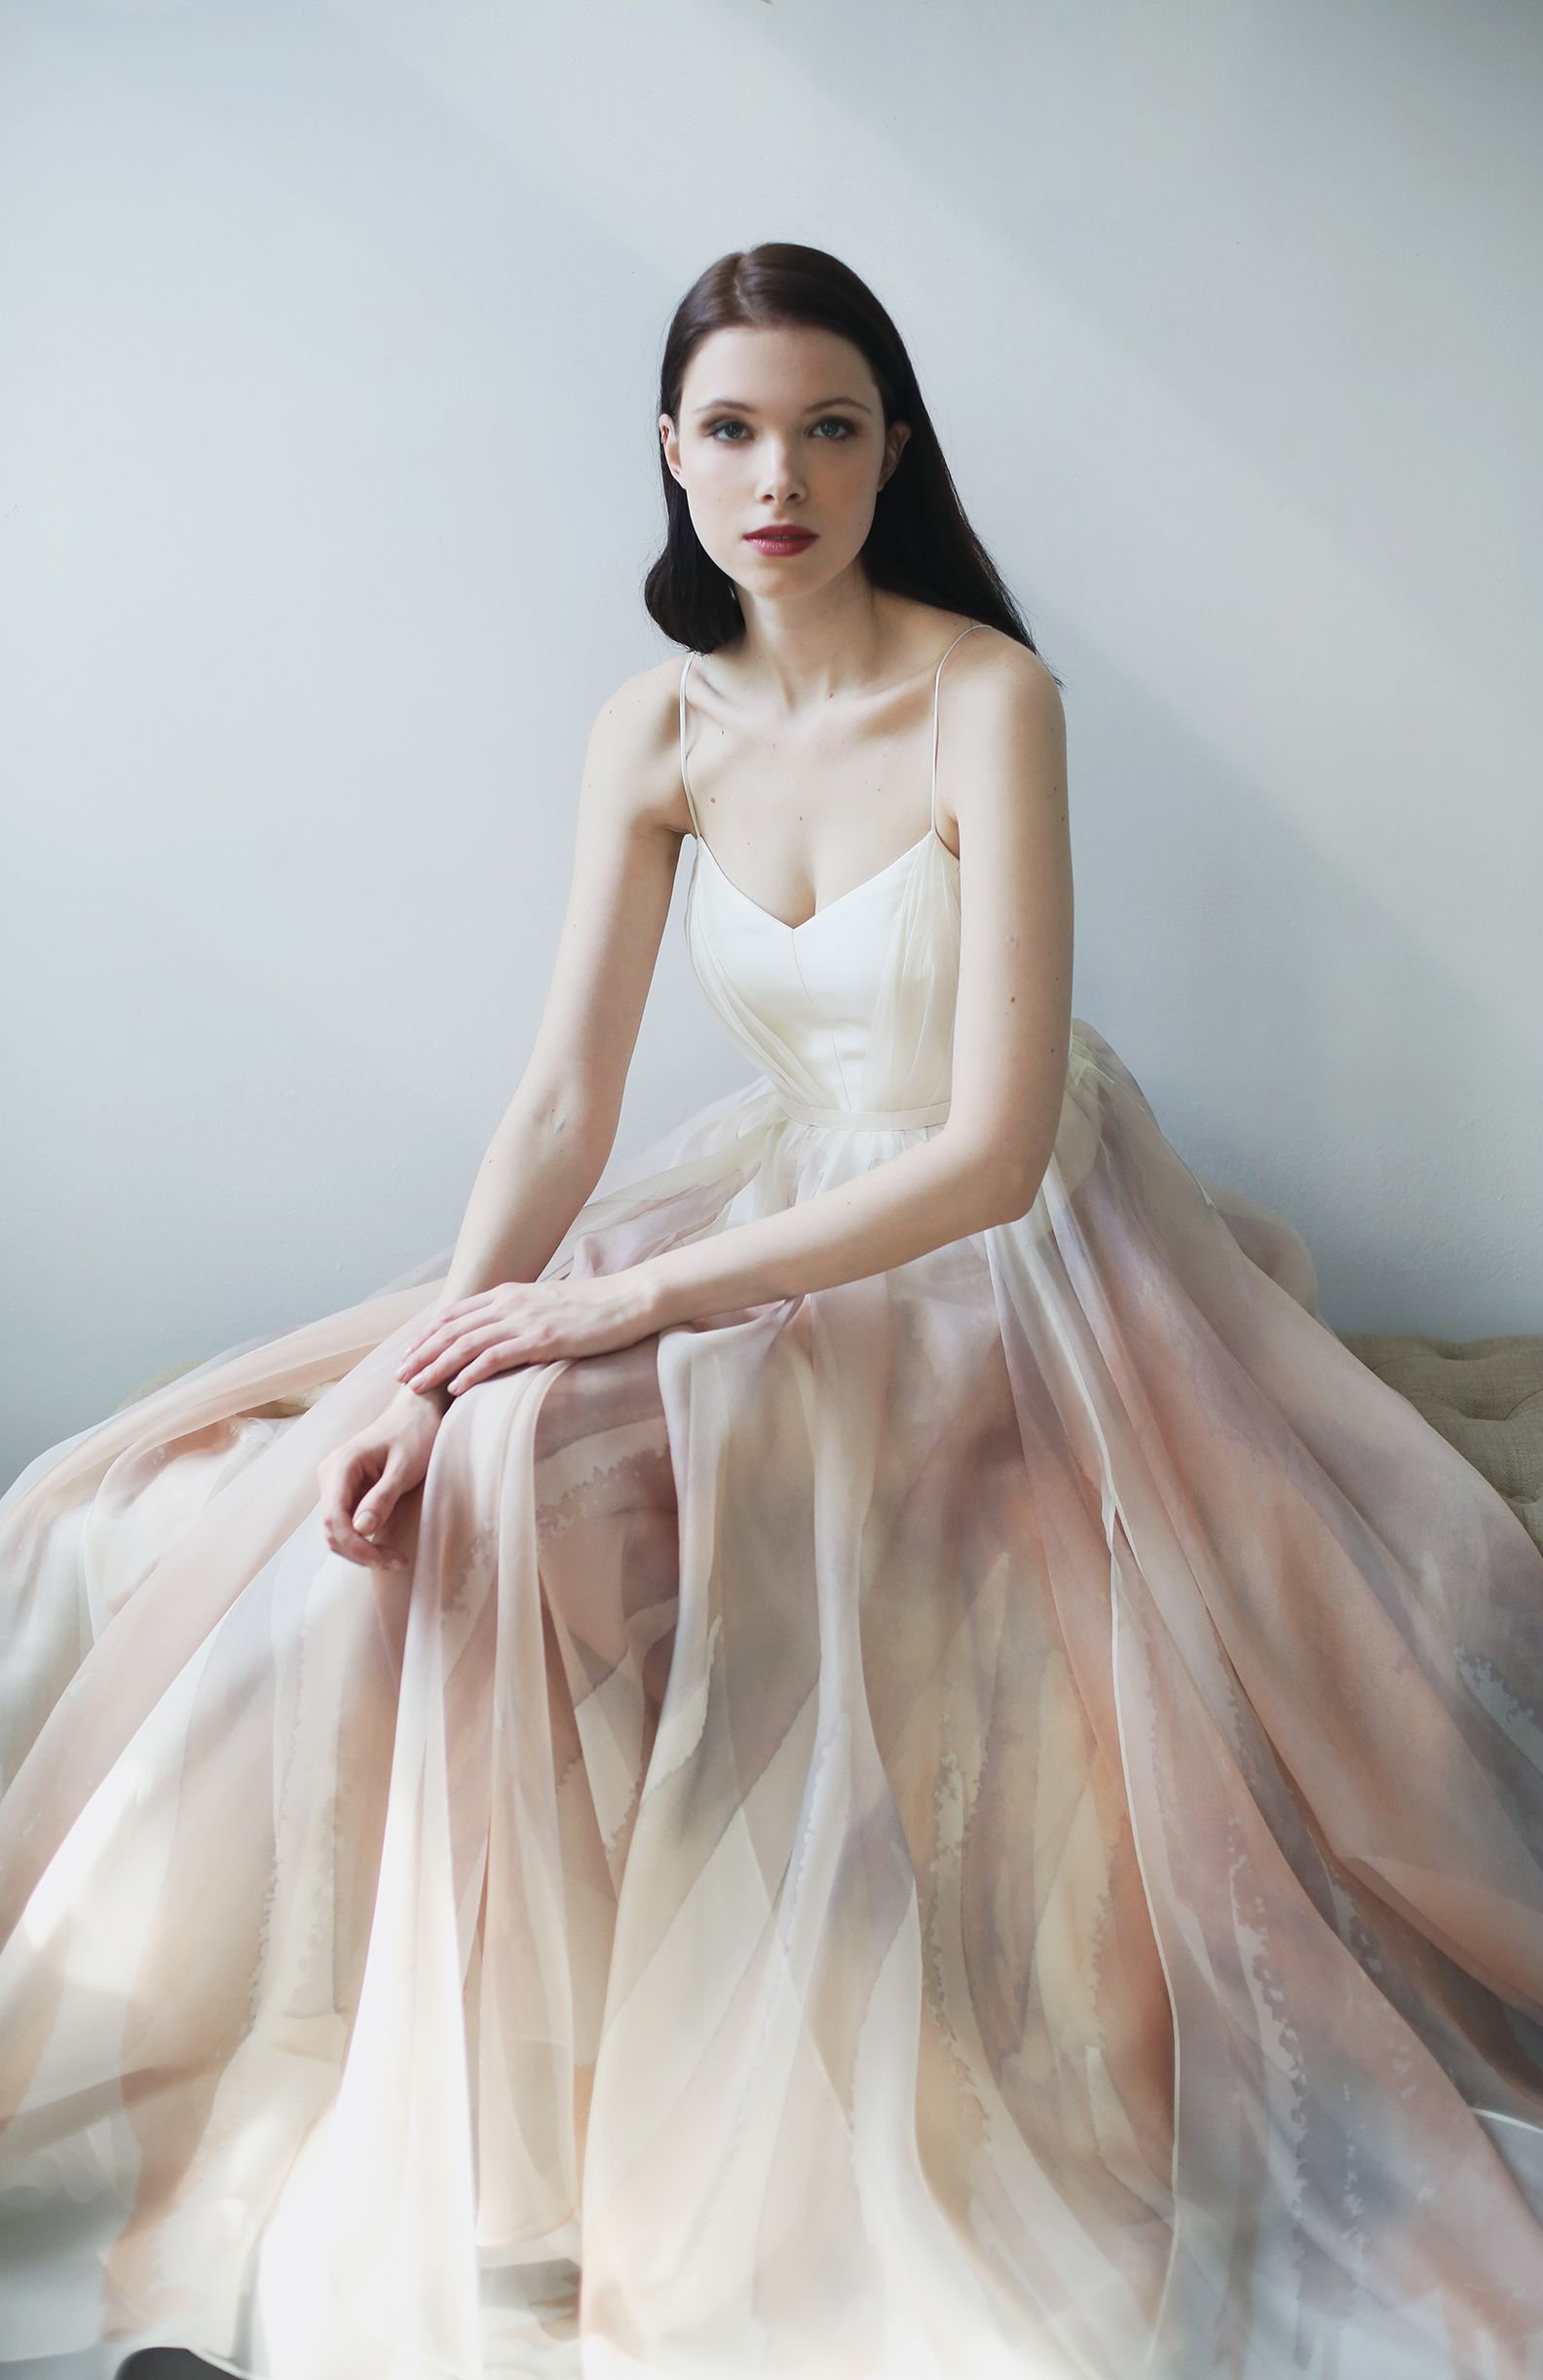 Soleil wedding dresses pinterest leanne marshall gowns and